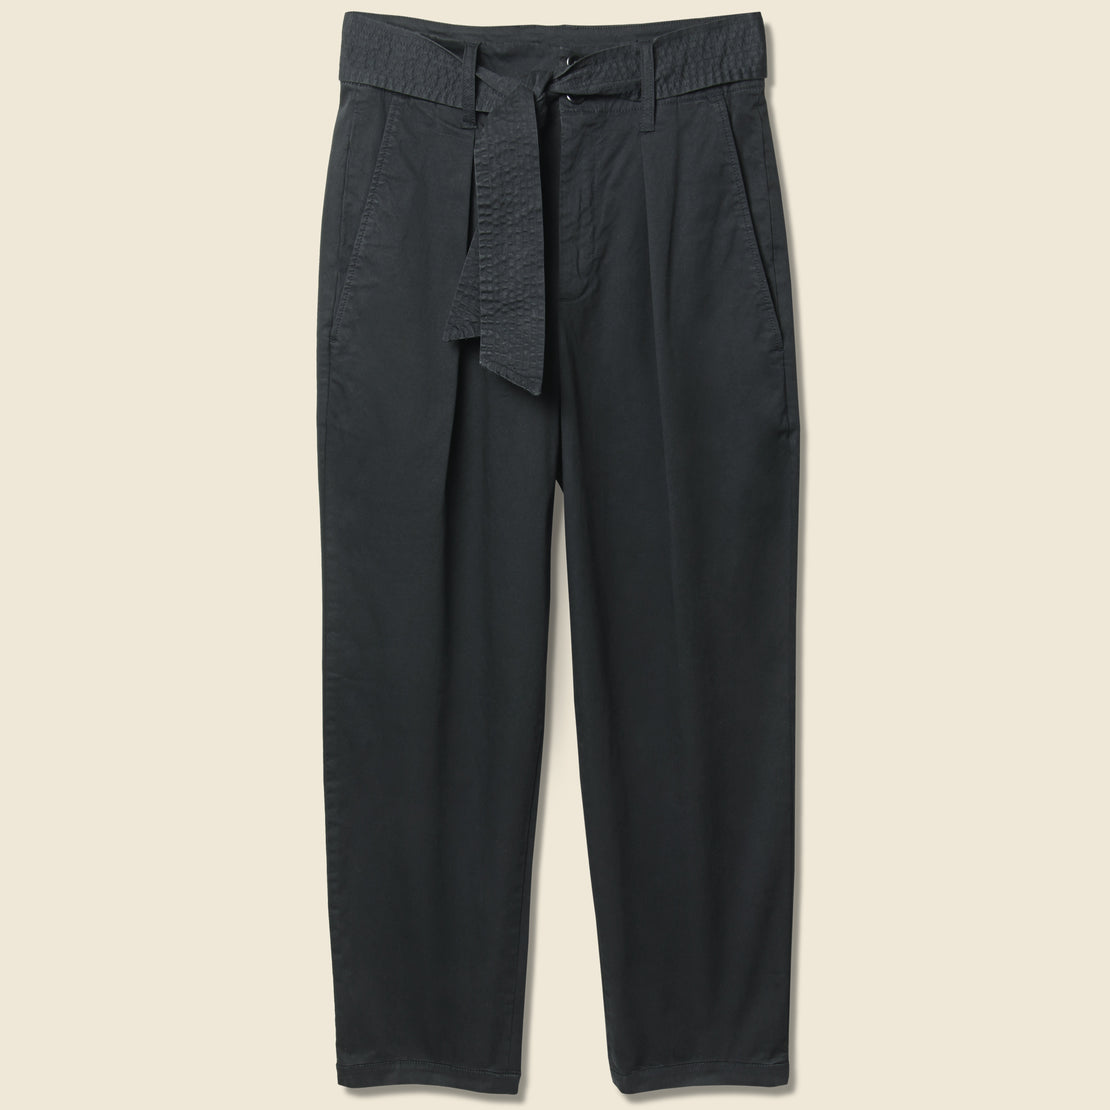 Alex Mill Avery Pleated Pant - Black